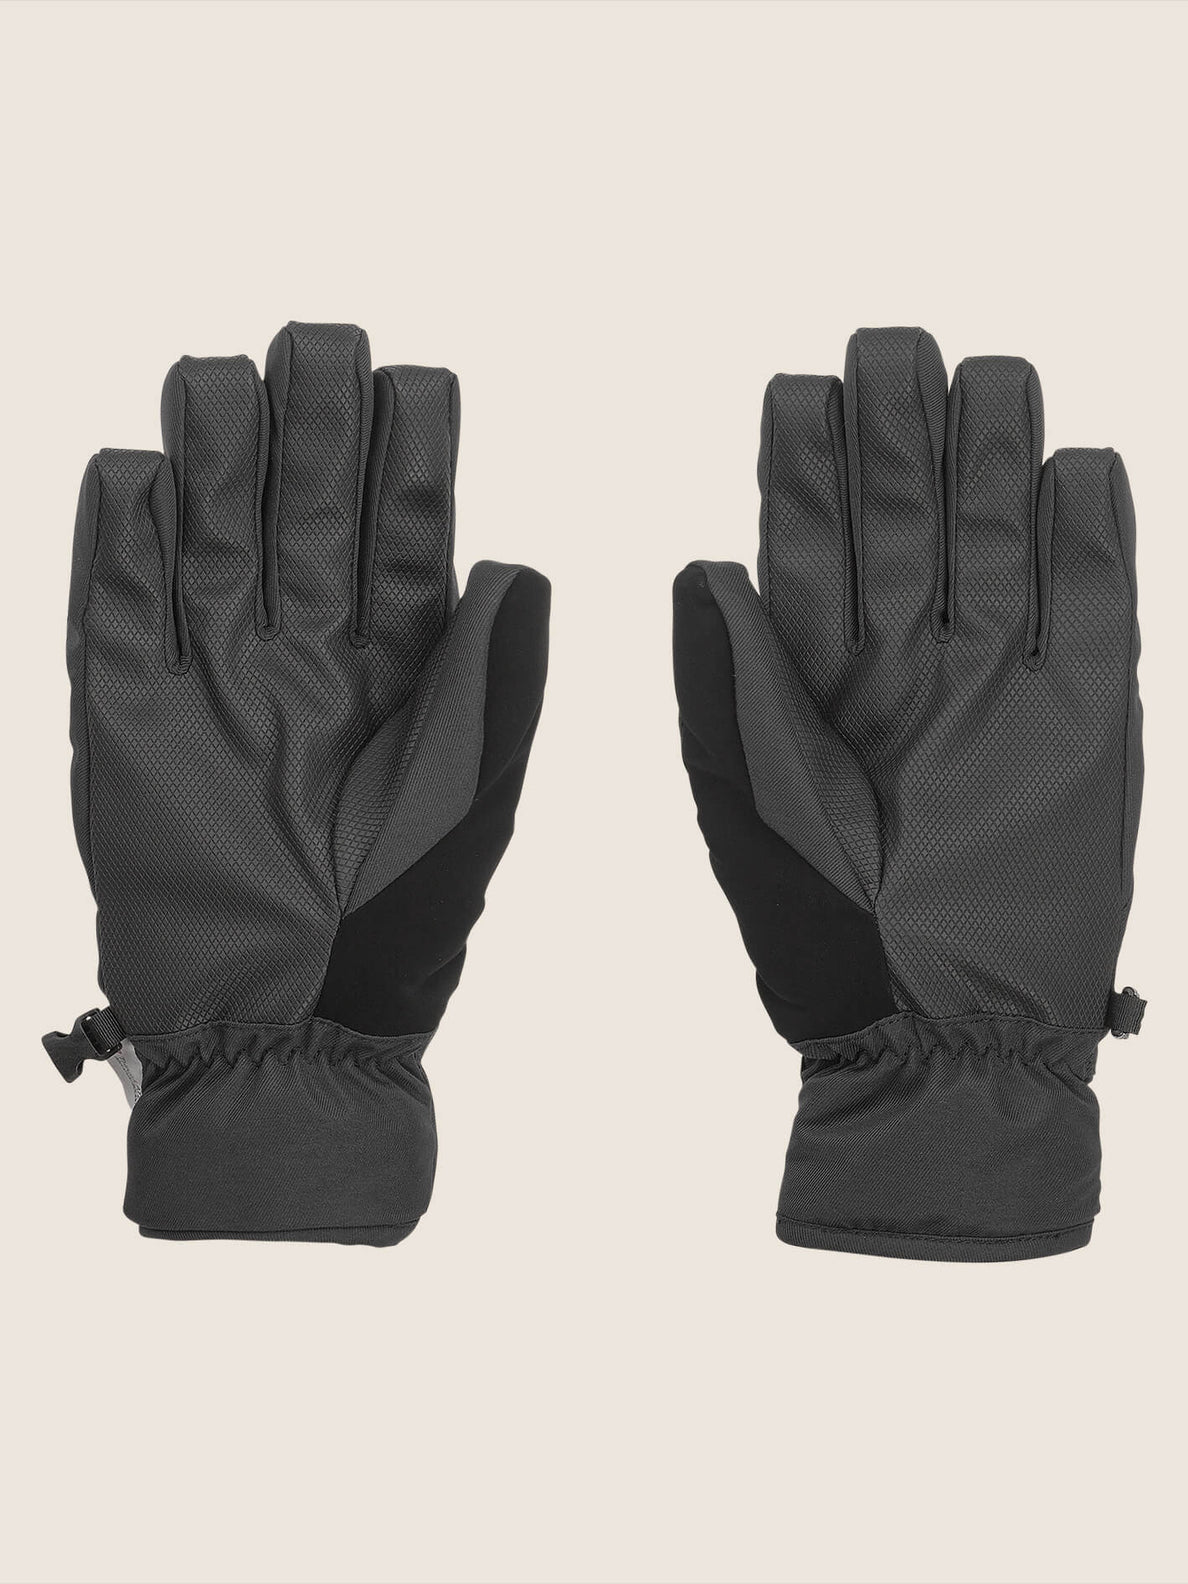 Nyle Glove In Black, Back View